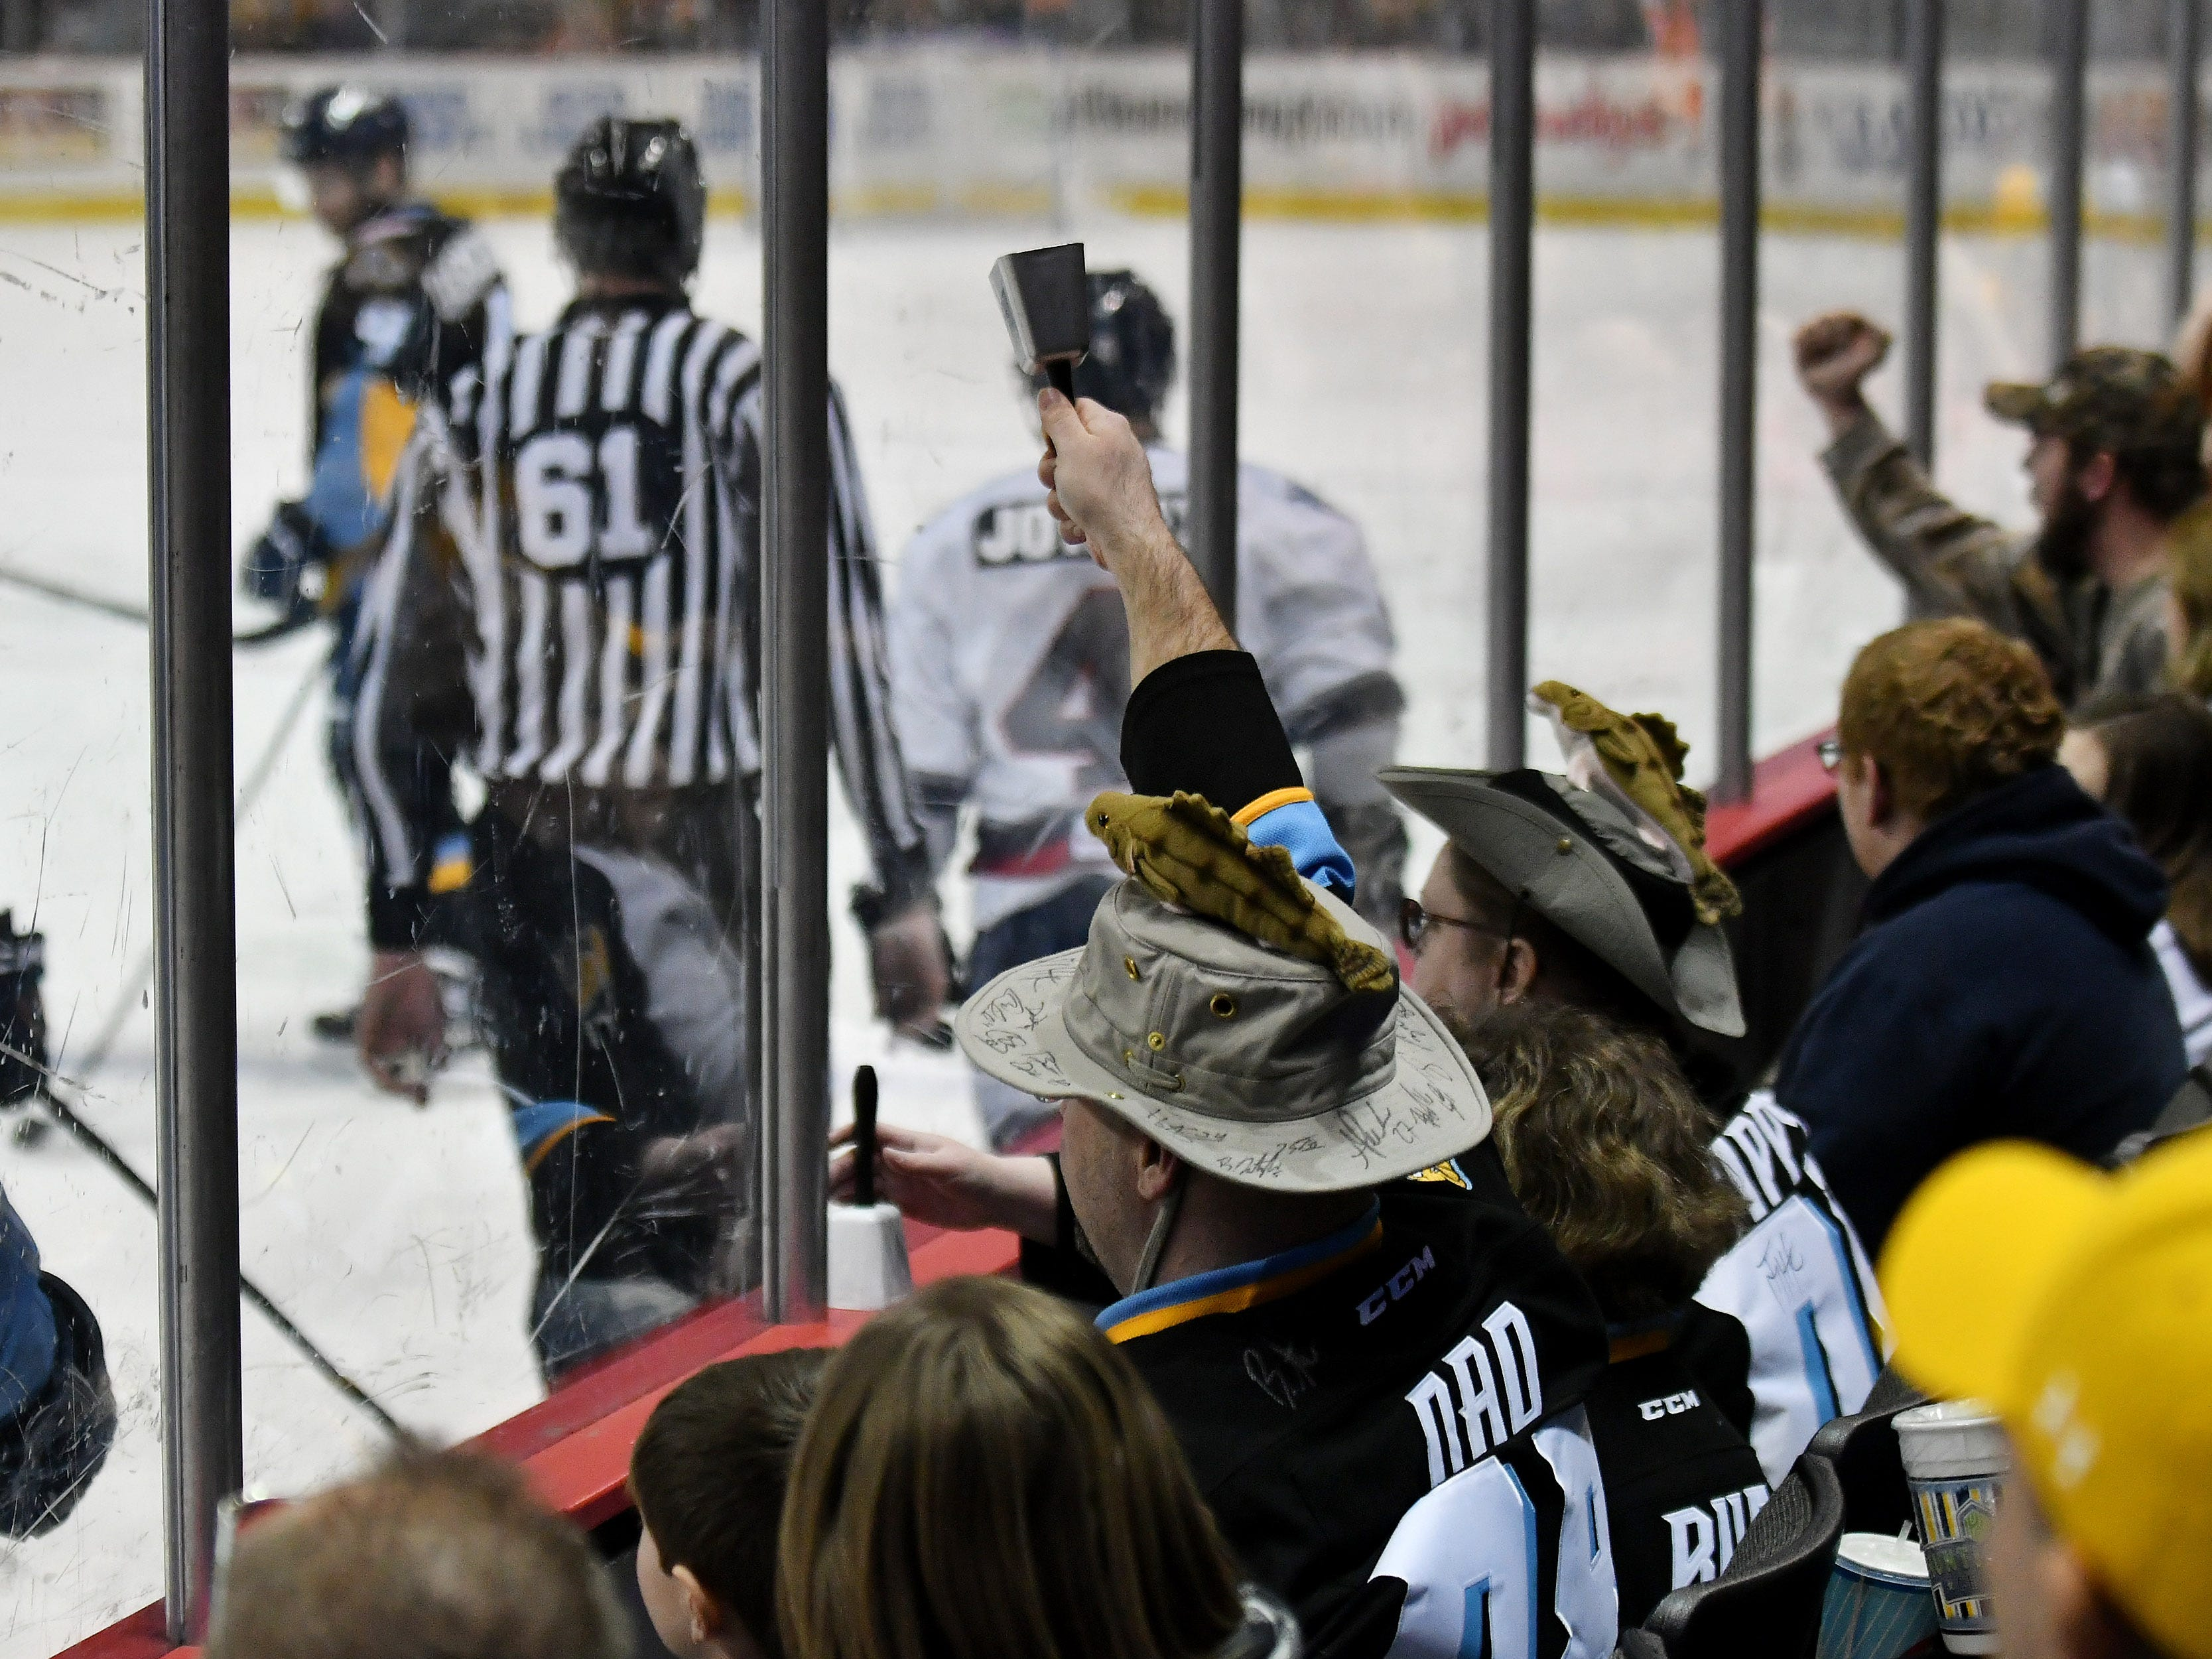 Michael McInerney of Sylvania, Ohio, makes noise with his cowbell in the second period.  McInerney and his wife, Tammy, are wearing hats that Michael customized with walleye pinned to the tops. Seated between them is their daughter, Katie McInerney, 9.